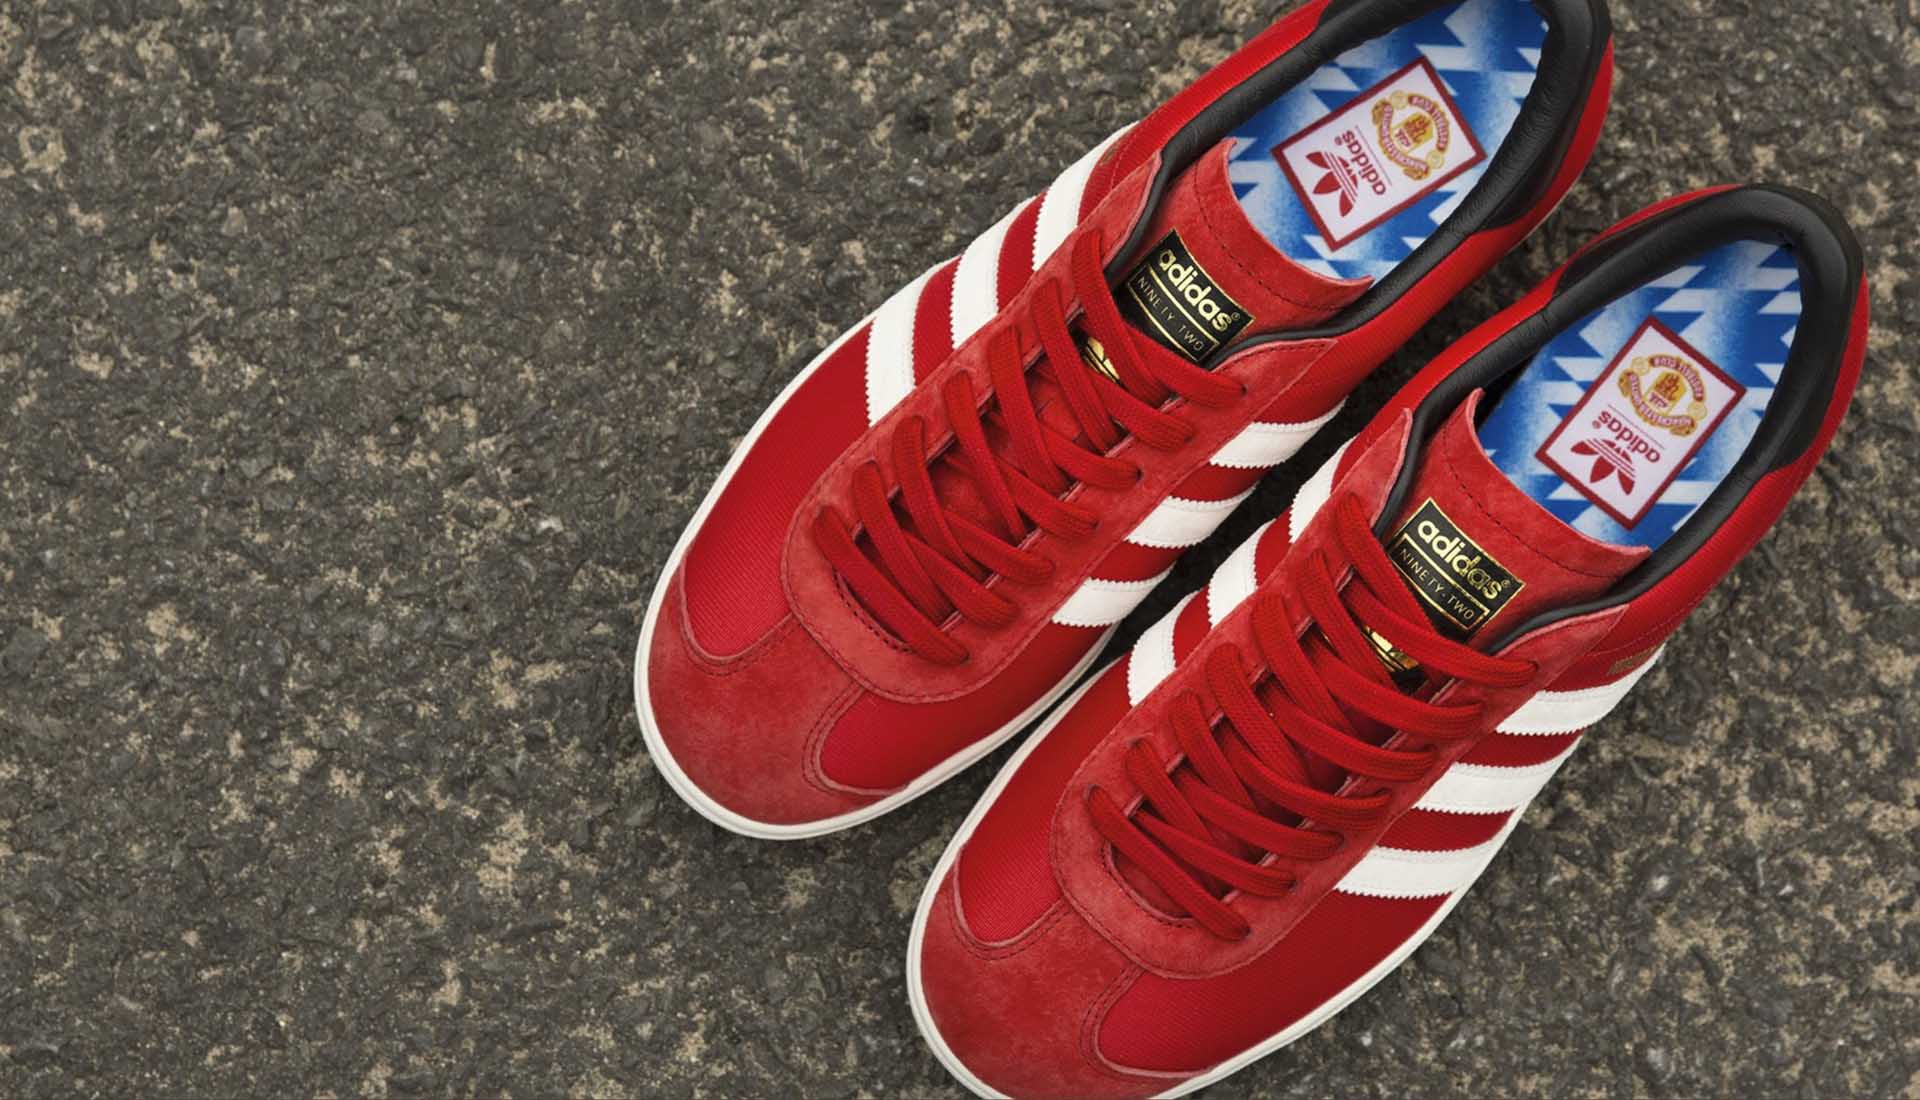 adidas Launch the MUFC Ninety Two Shoe SoccerBible